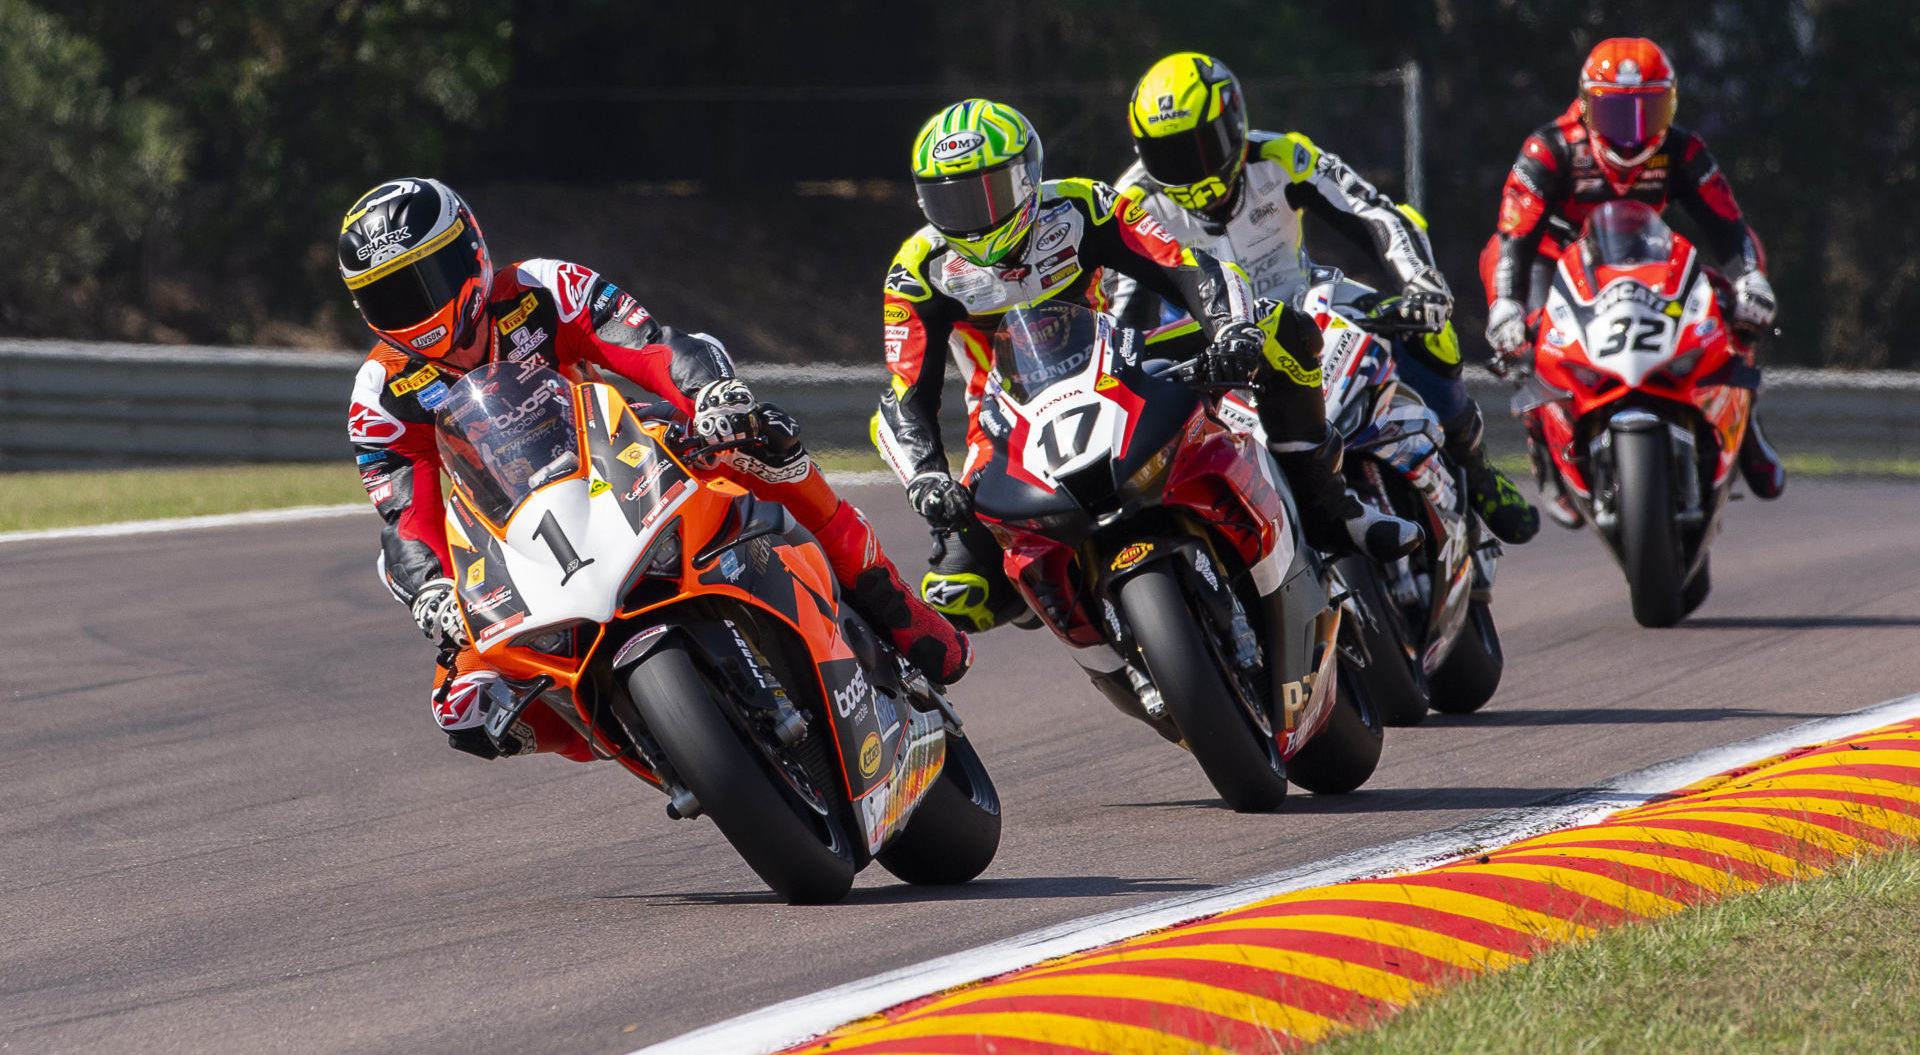 Wayne Maxwell (1) leads Troy Herfoss (17), Glenn Allerton (behind Herfoss), and Oli Bayliss (32) during Race One at Hidden Valley Raceway. Photo by Optikal Phtoography, courtesy ASBK.